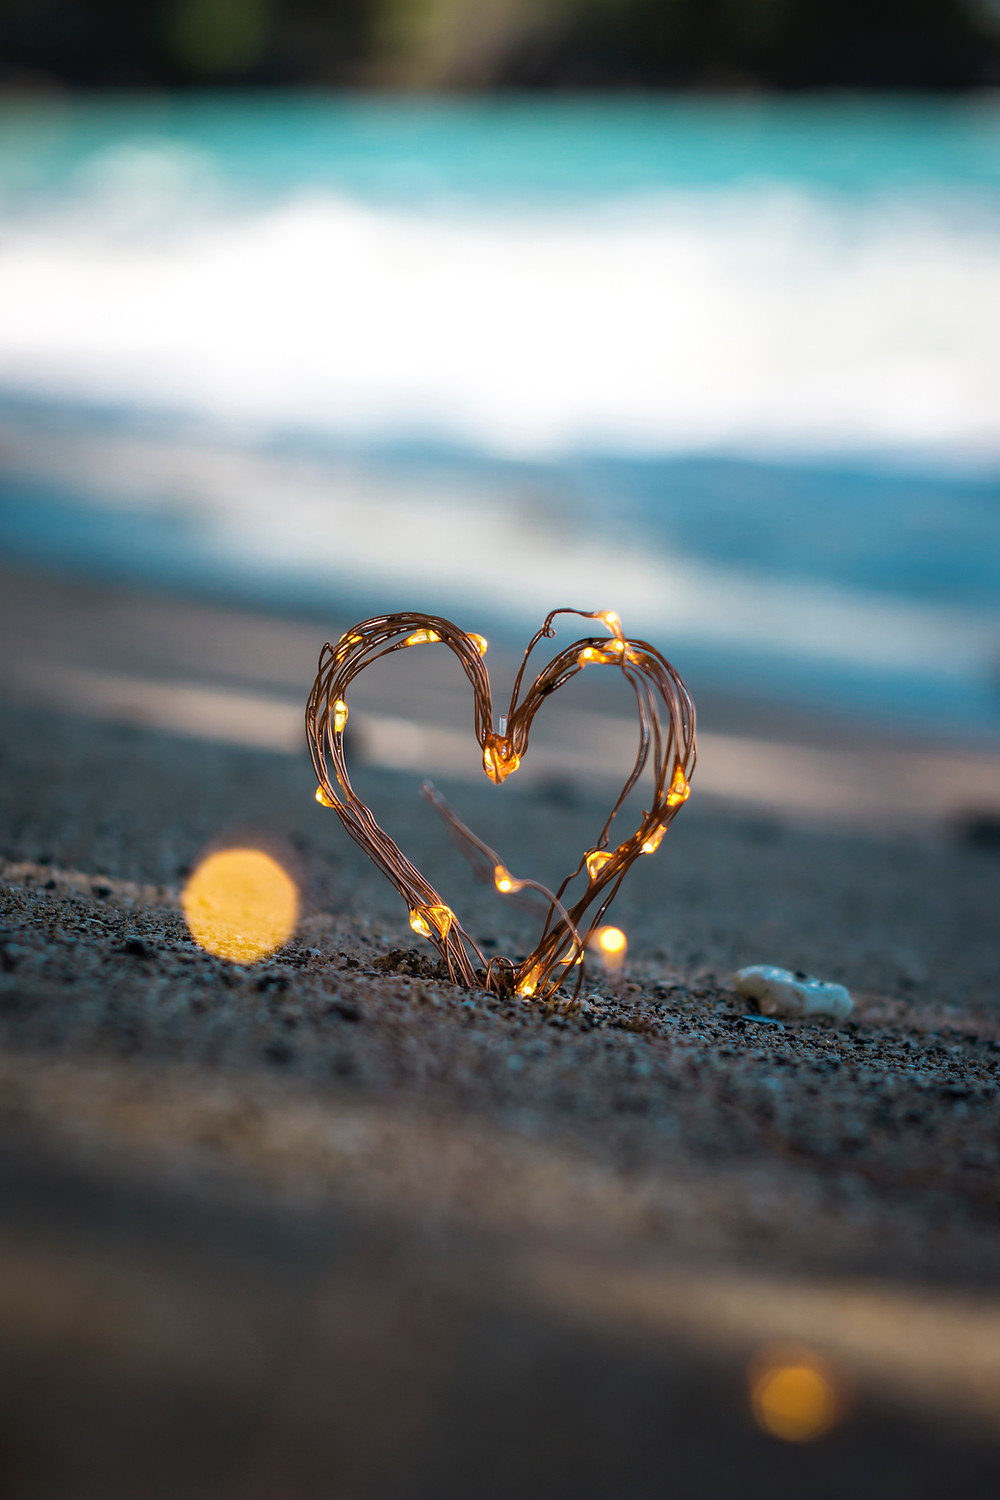 A heart glowing with lights.